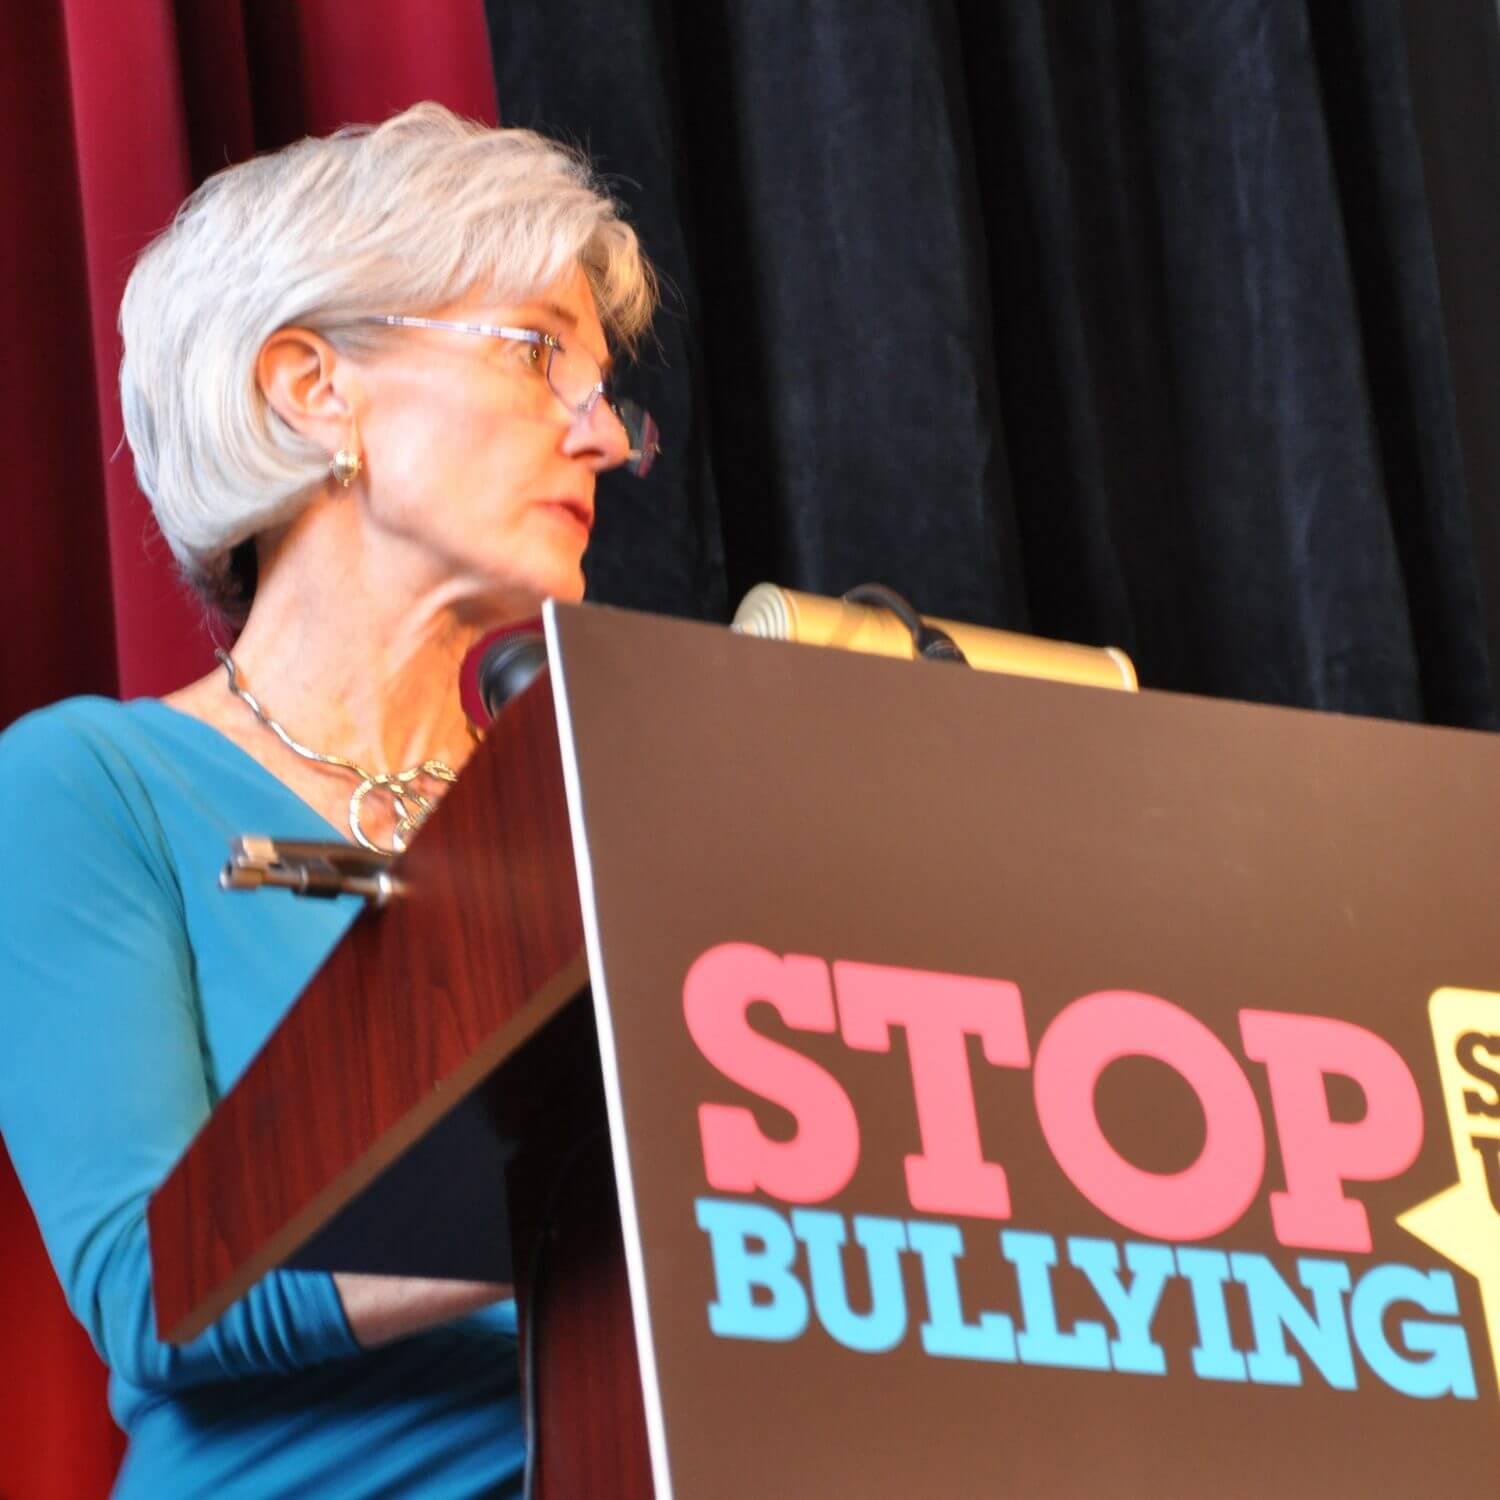 Sebelius tells students they 'need to be heard' for anti-bullying cause